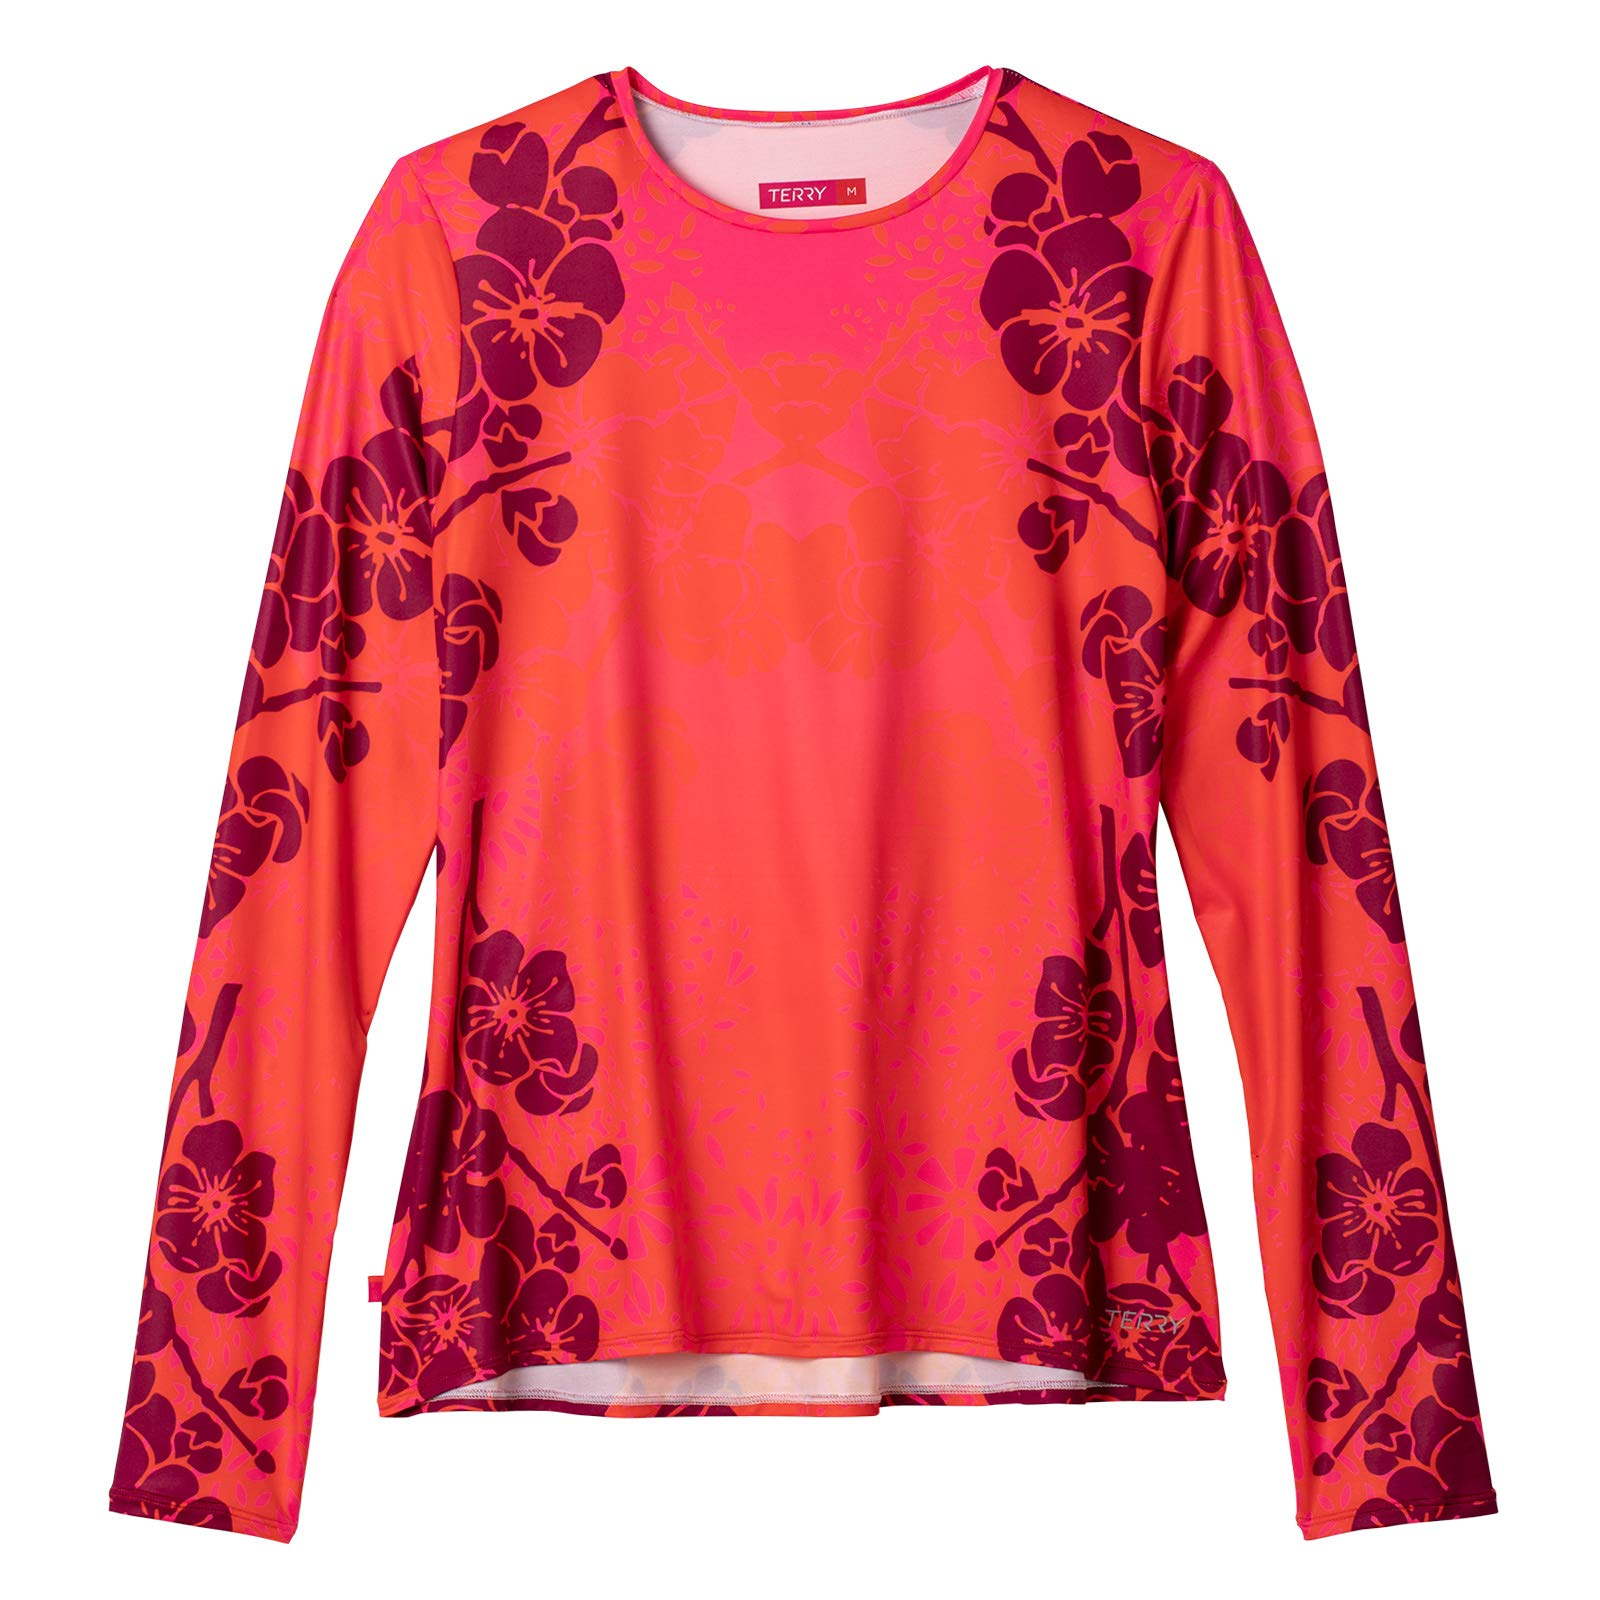 Terry Women's Soleil Flow Long Sleeve Athletic Top Loose Fit UPF 50+ Protection Lightweight - Haleakala - X Large by Terry